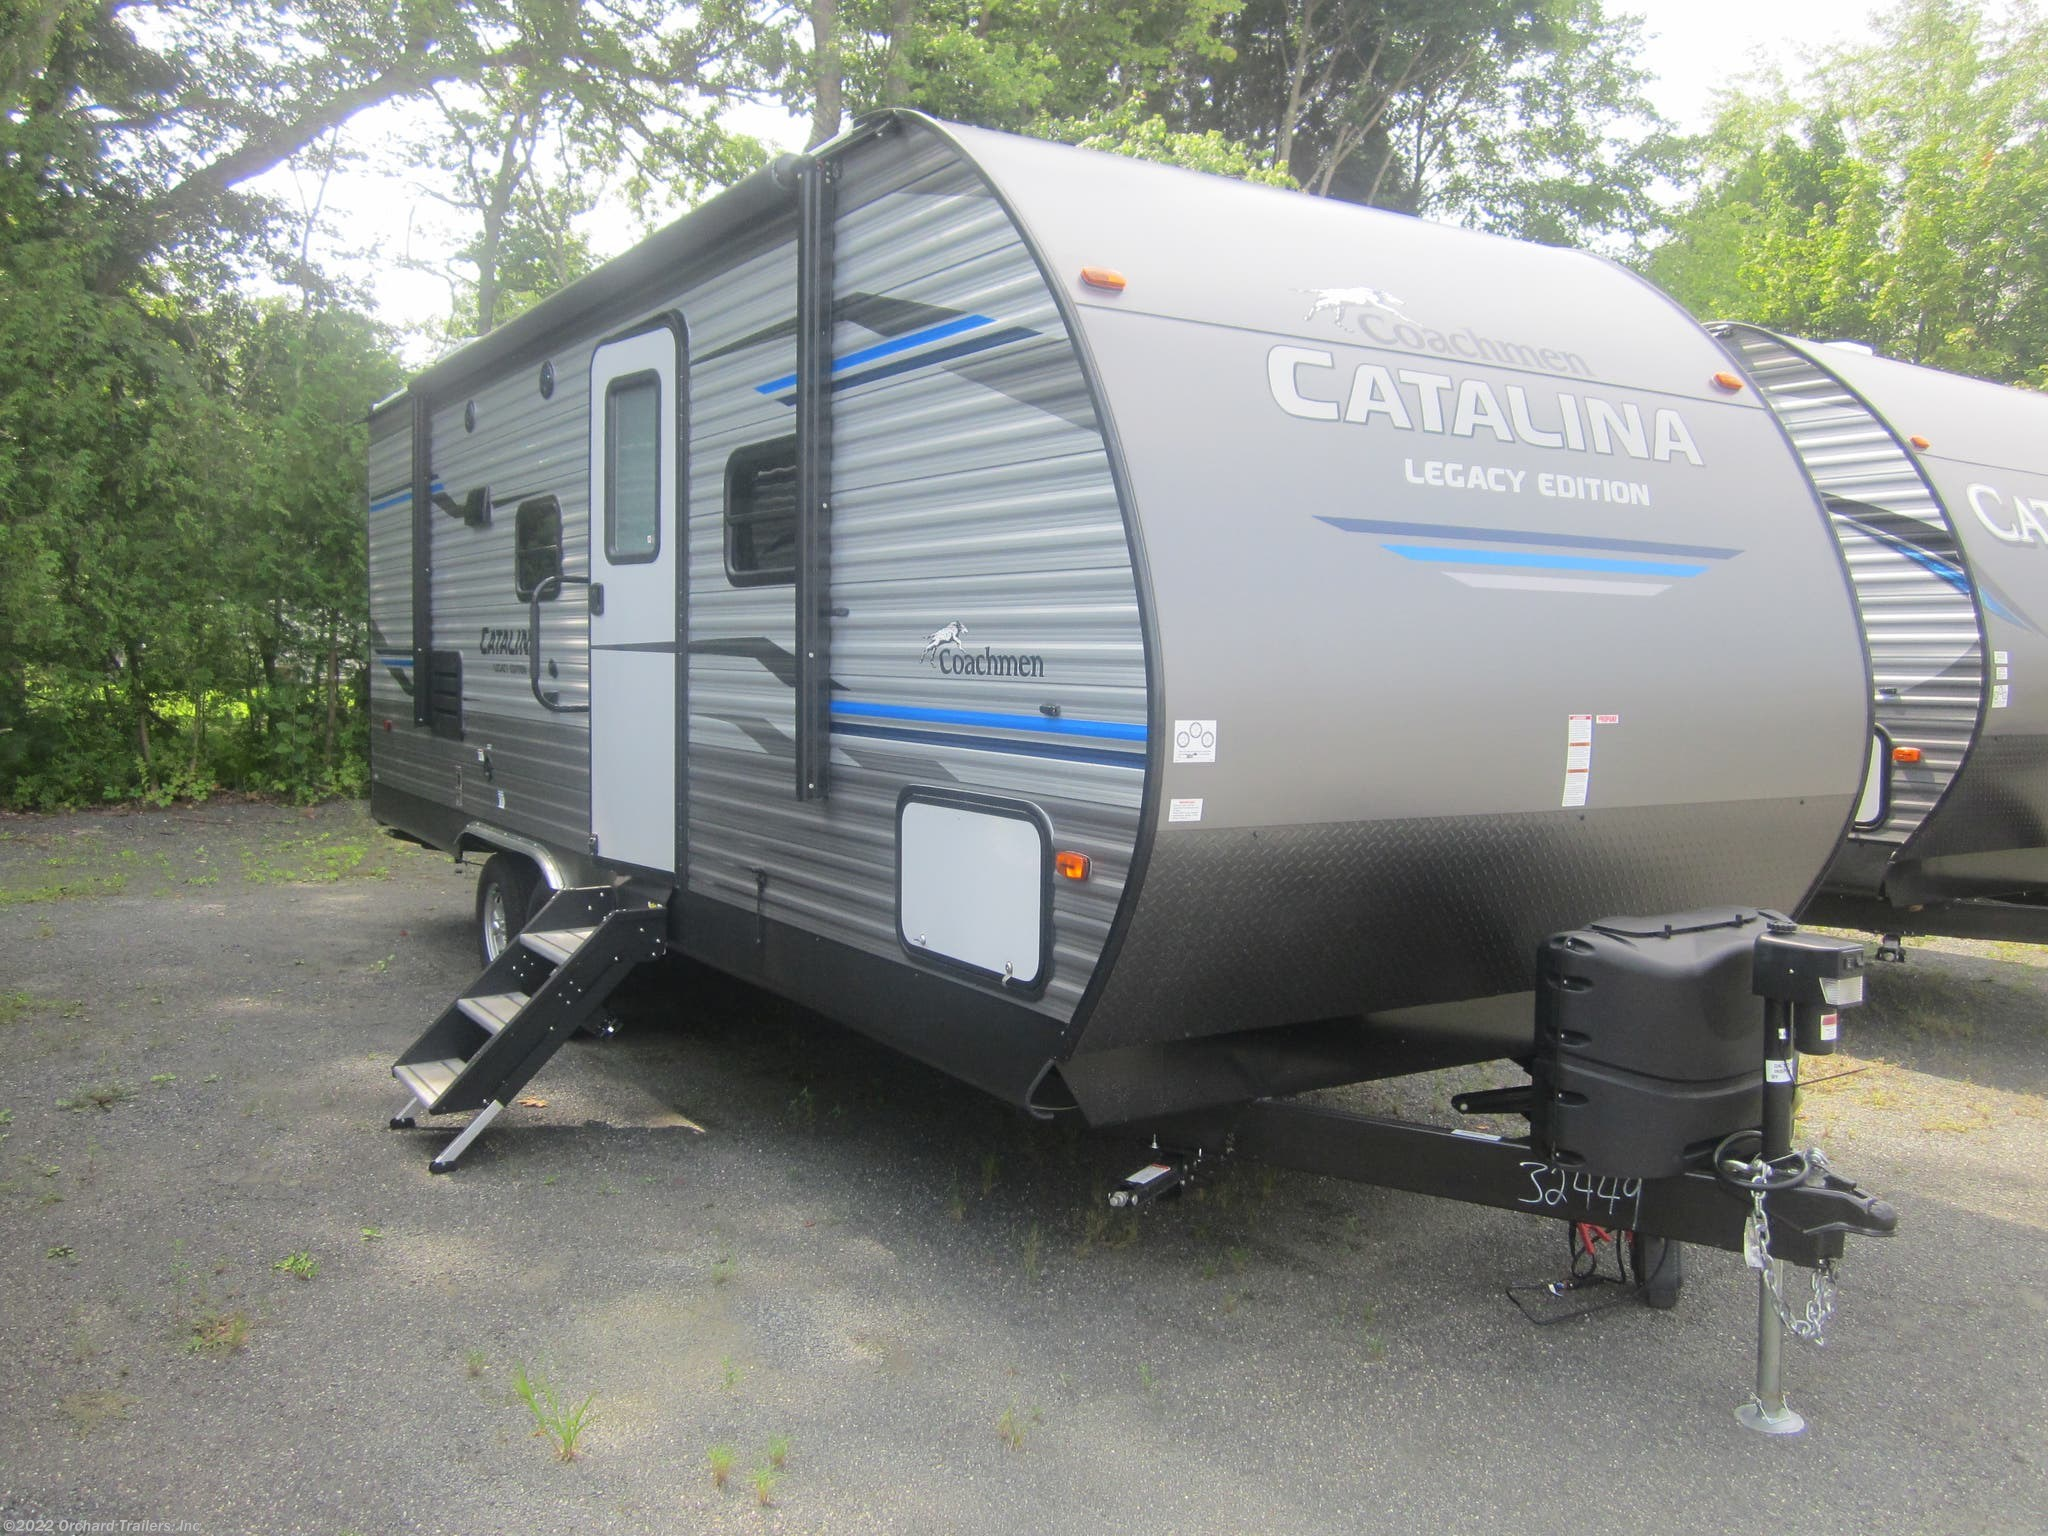 Coachmen Catalina 243Rbs >> 2019 Coachmen Rv Catalina 243rbs For Sale In Whately Ma 01093 104374